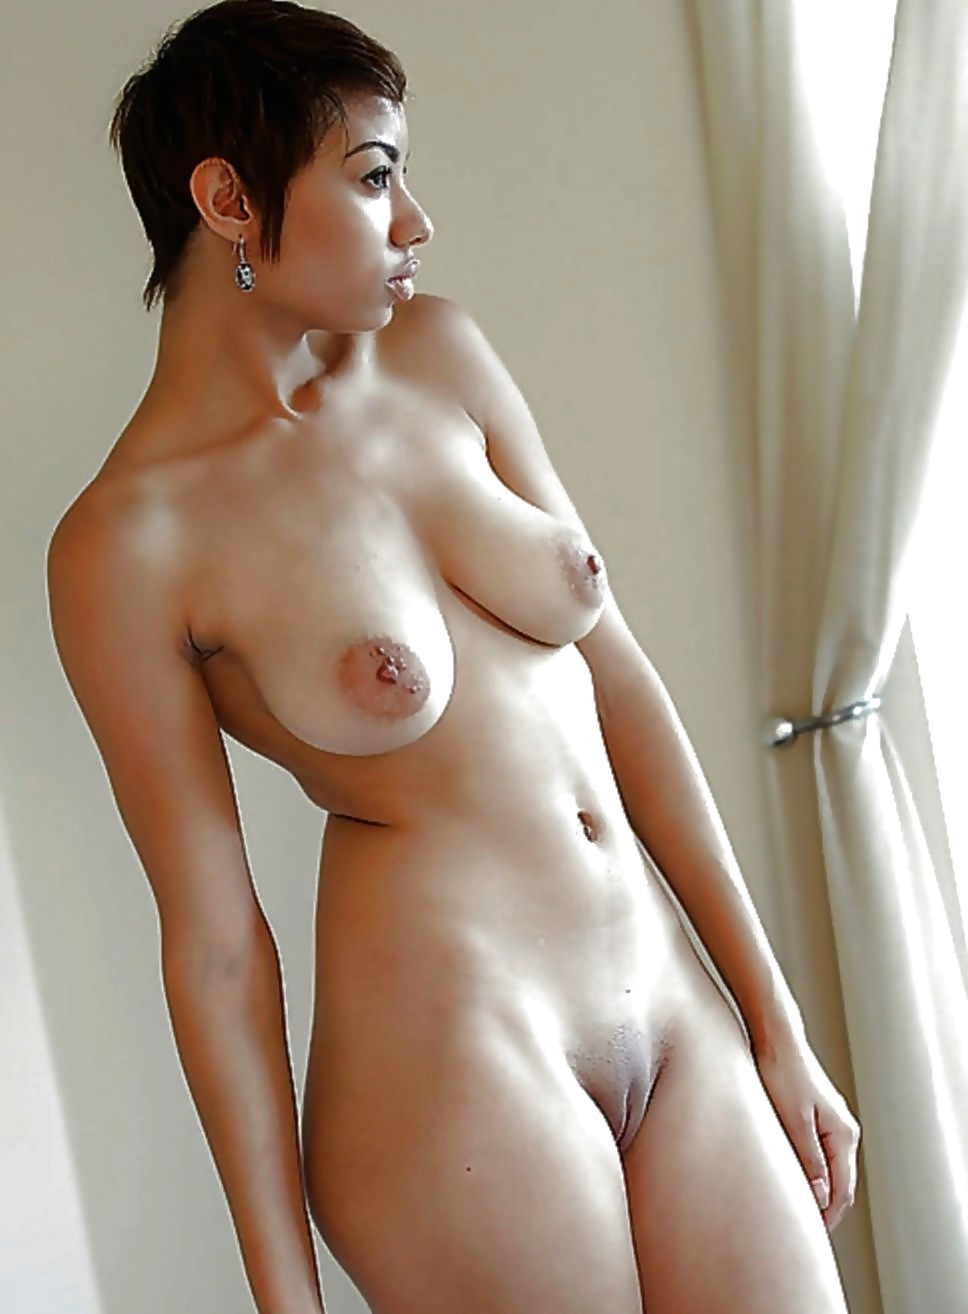 Free big tits, short hair pictures